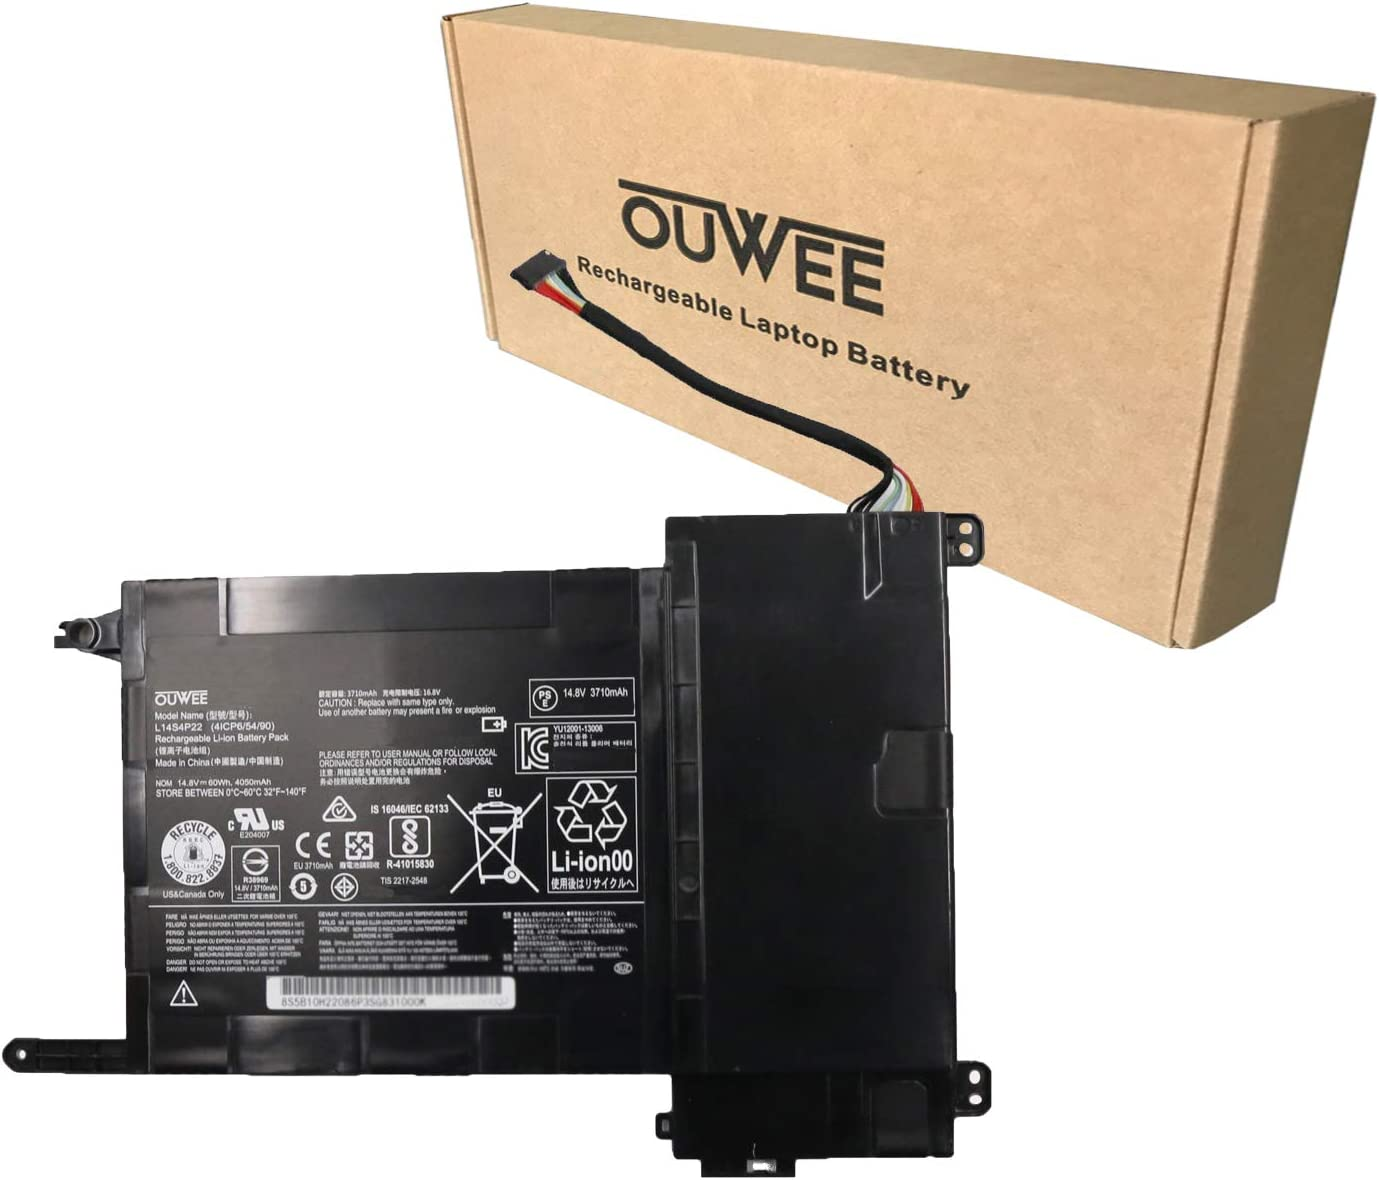 OUWEE L14S4P22 Laptop Battery Compatible with Lenovo IdeaPad Y700-15ACZ Y700-15ISK Y700-17ISK Y700 Touch-15ISK Series Notebook 14.8V 60Wh 4050mAh 5B10H22086 L14M4P23 5B10H22085 5B10H22084